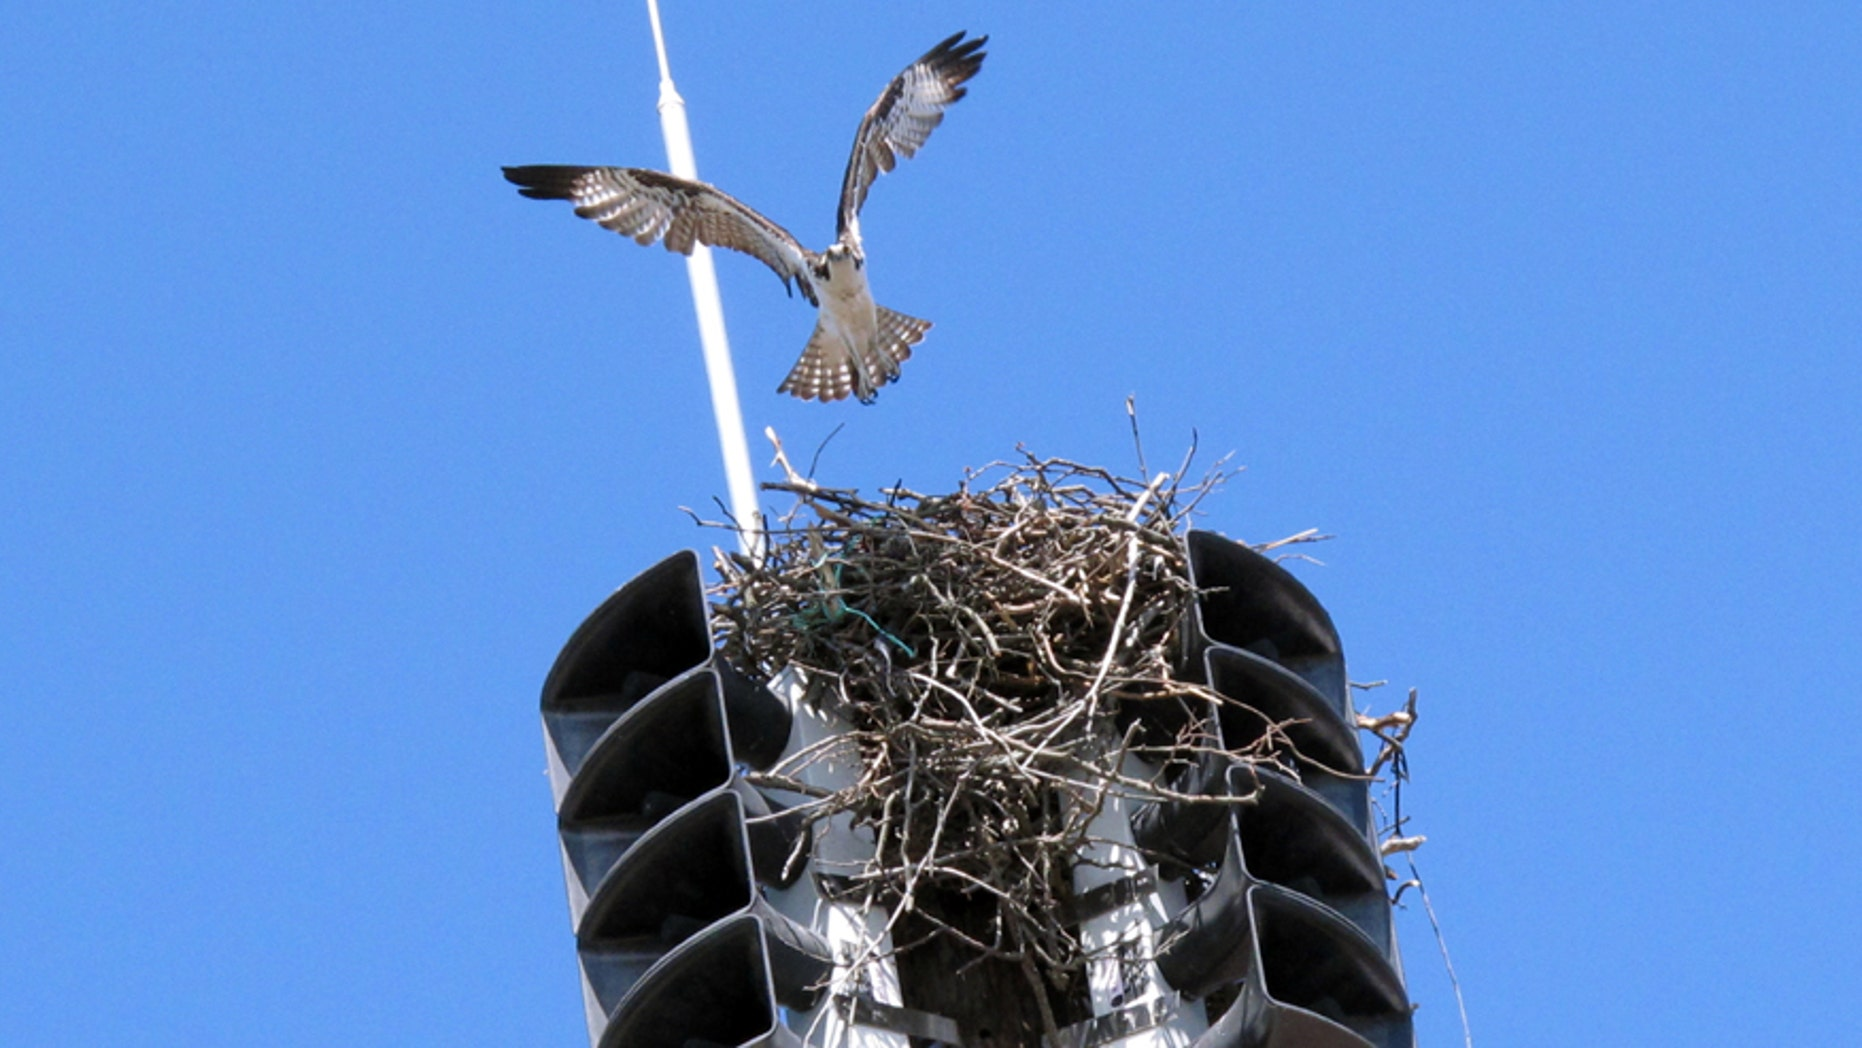 An osprey takes off from its nest inside a fire siren in Spring Lake N.J. on Tuesday May 6, 2014. The Jersey shore town has been forced to turn the siren off until fall to avoid disturbing the bird and any chicks it may have. First responders are notified of emergencies using pagers or cell phones. (AP Photo/Wayne Parry)